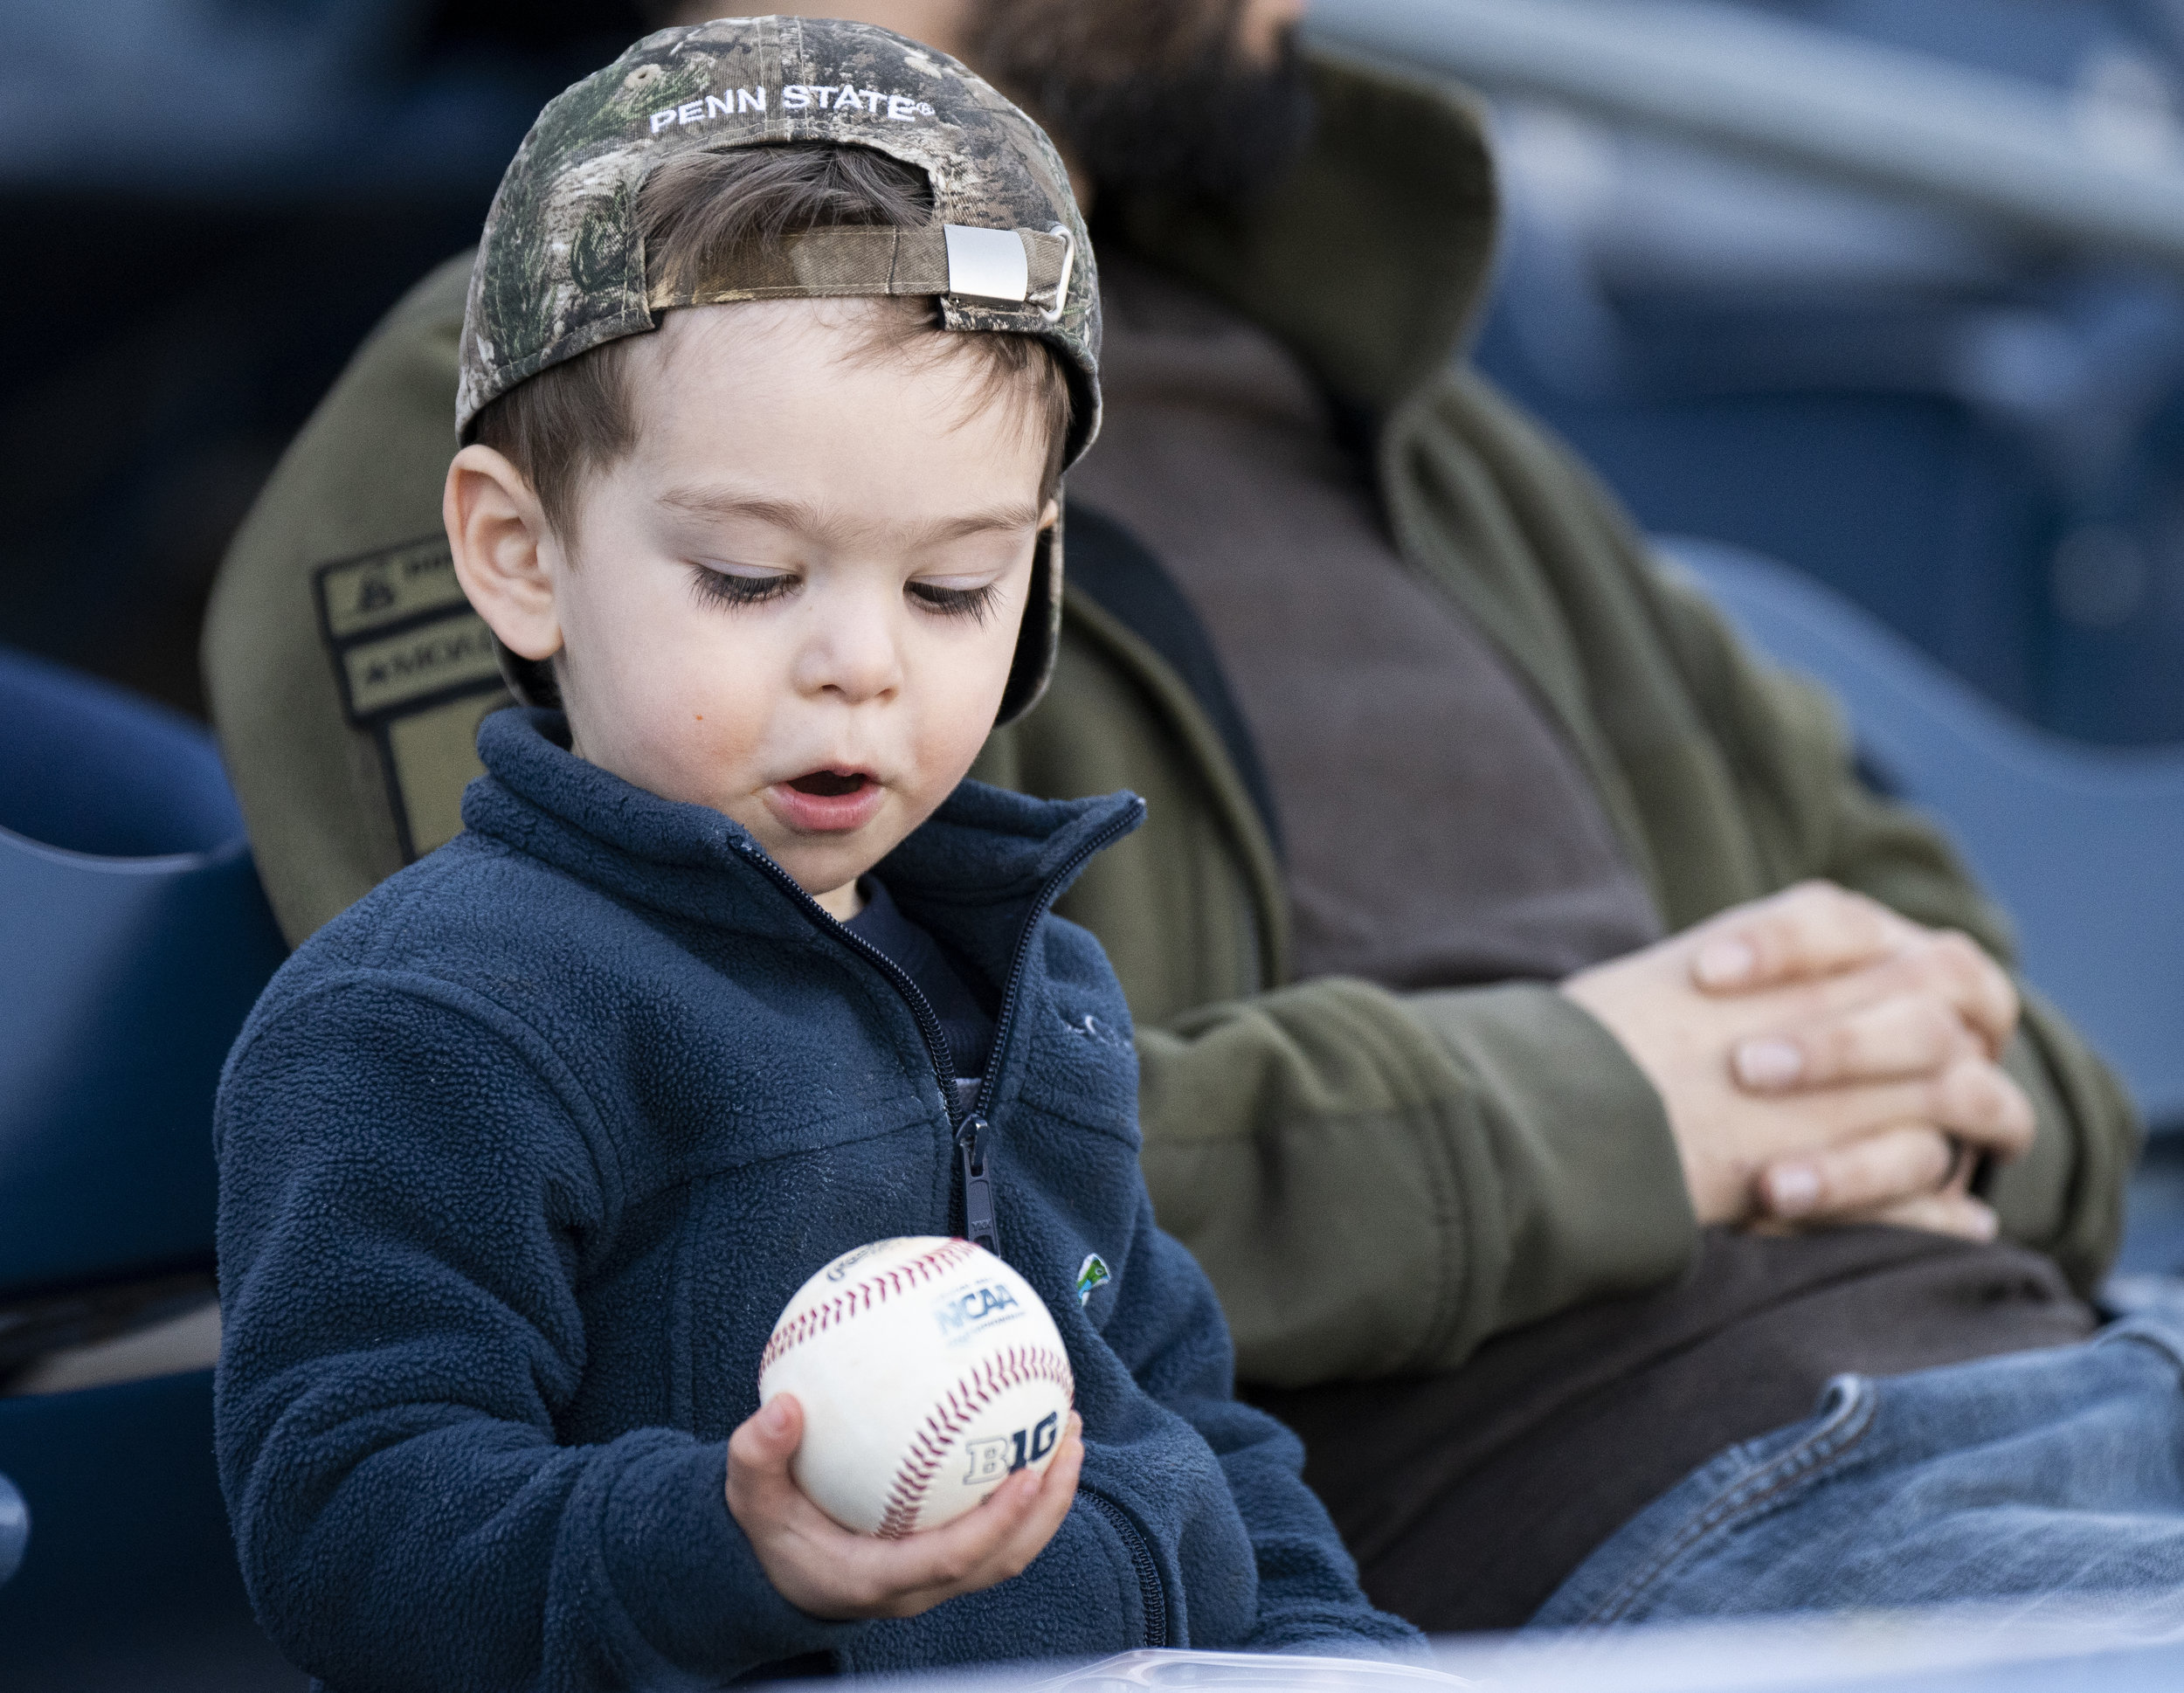 A fan receives a ball during the Penn State Baseball game on Friday, March 15, 2019 at Medlar Field. | by: Noah Riffe